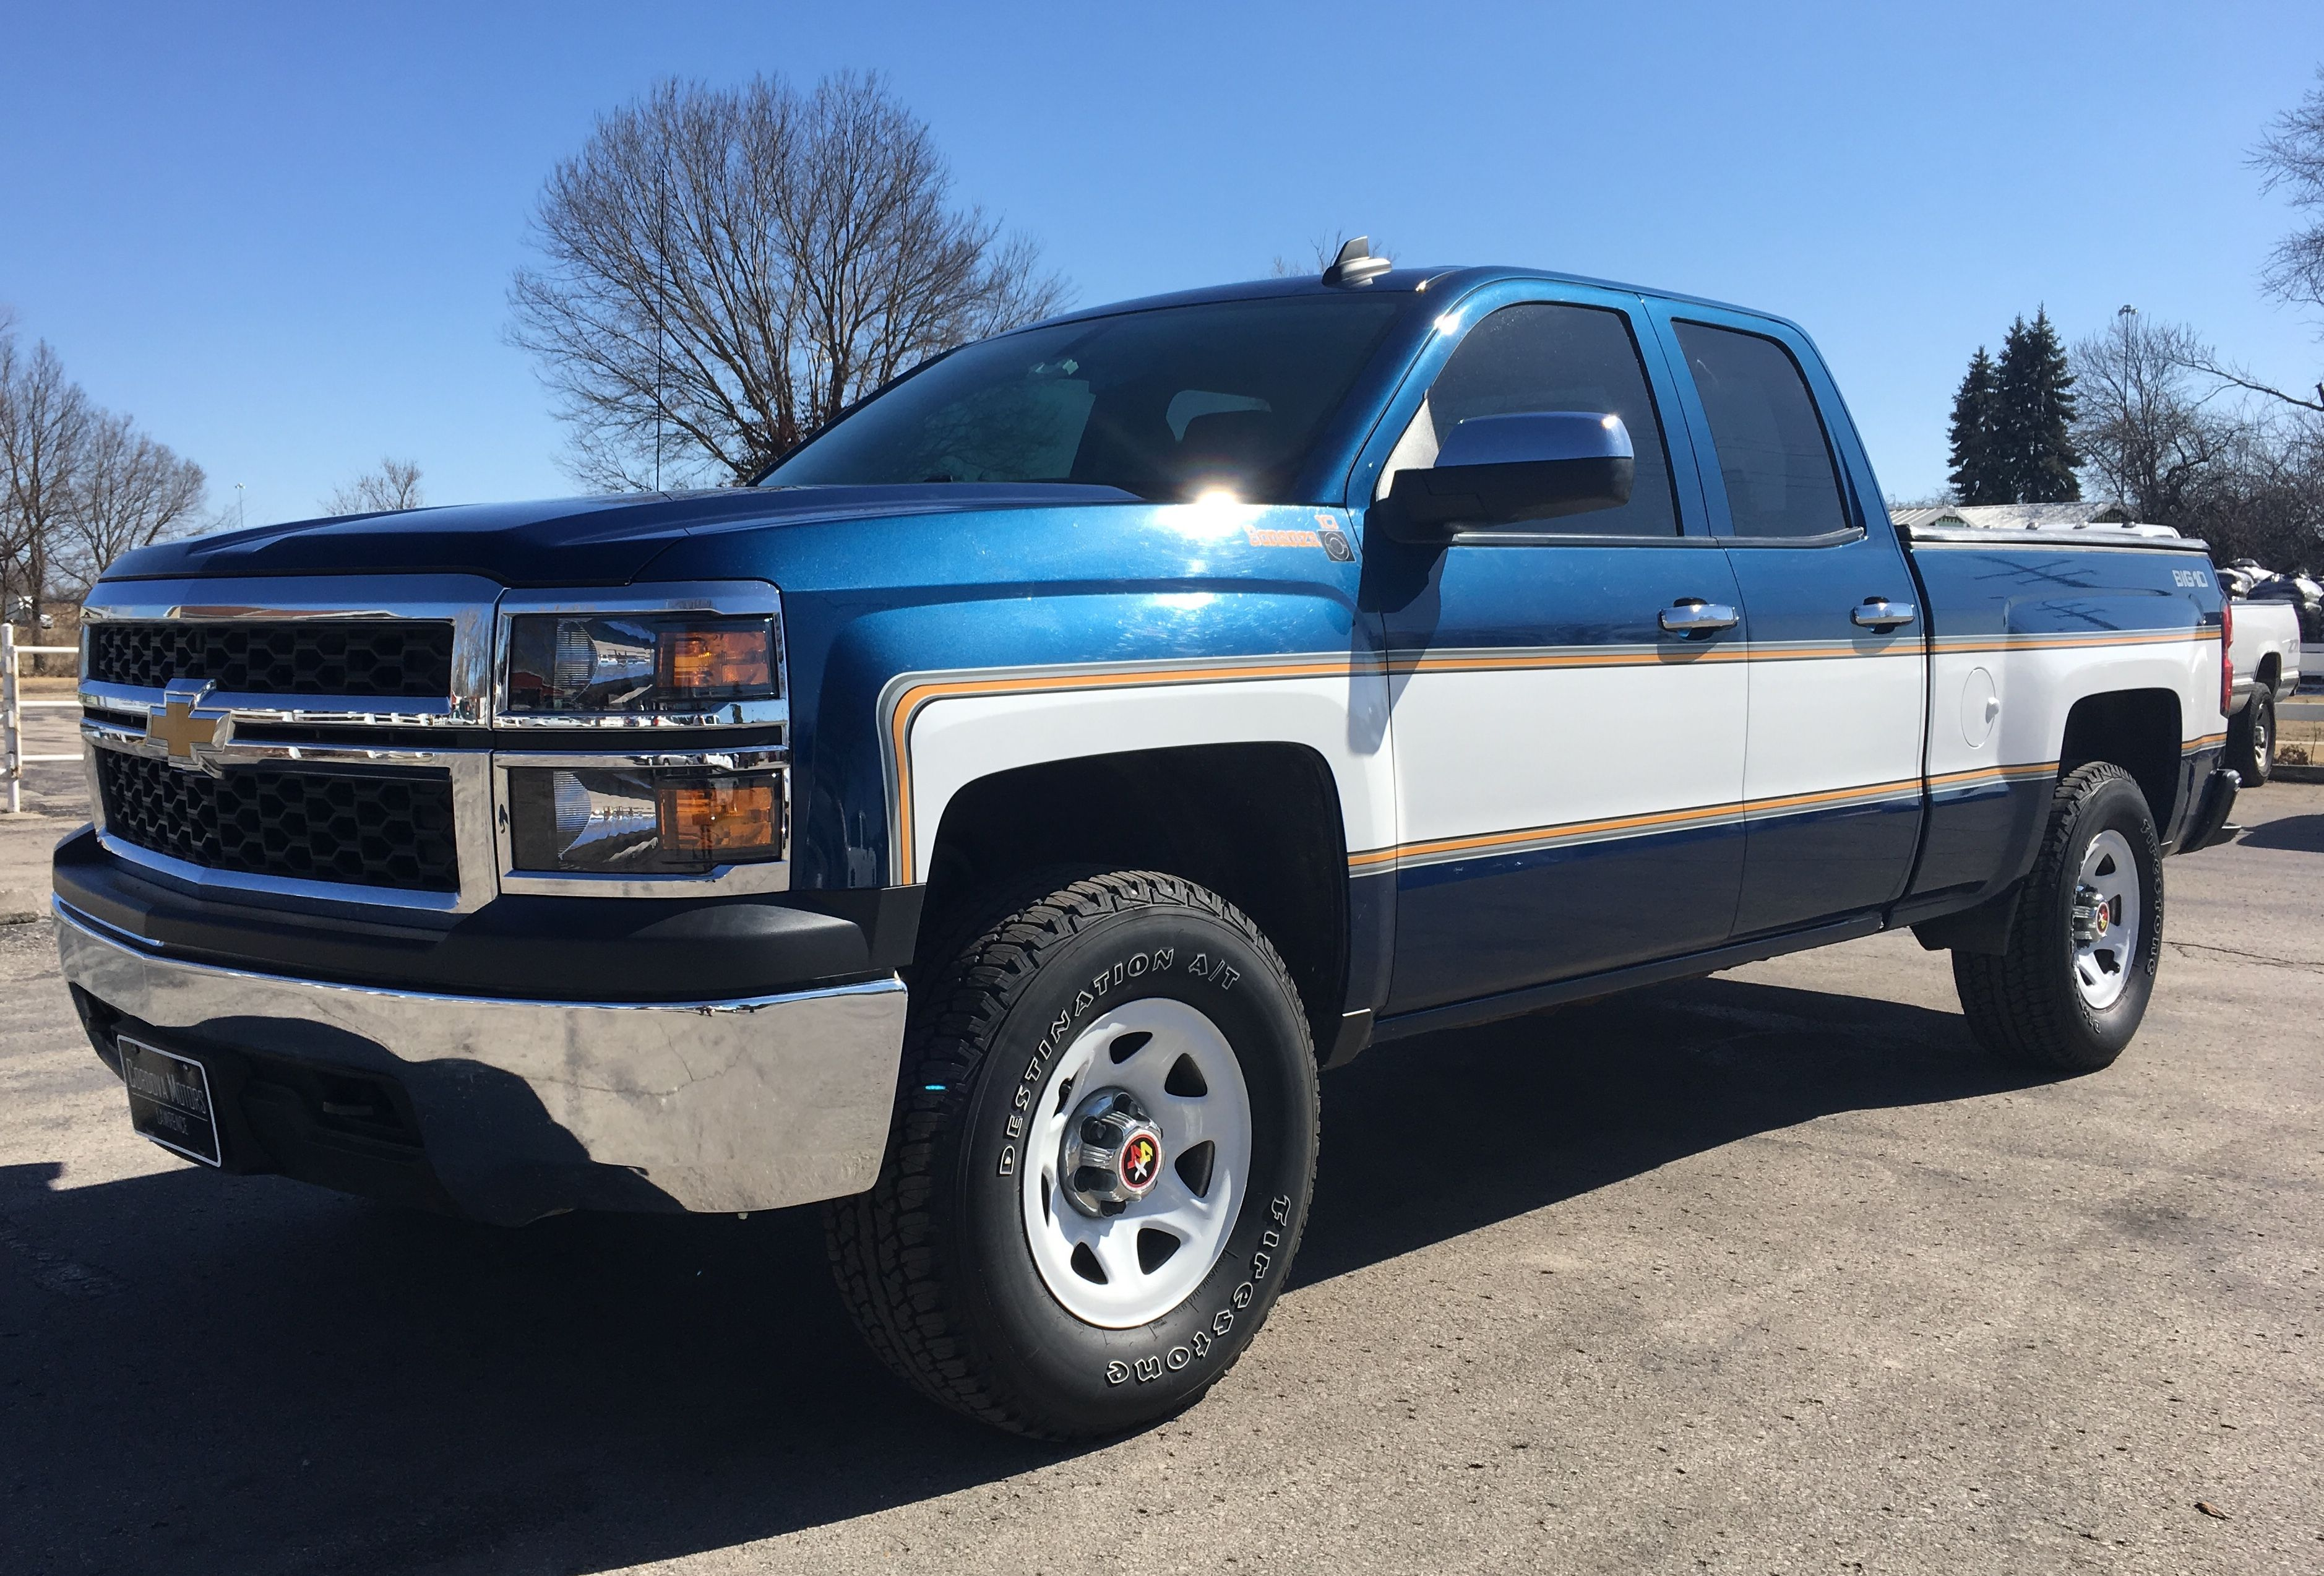 Chevy Silverado Cheyenne Super 10 In Blue And White Cool